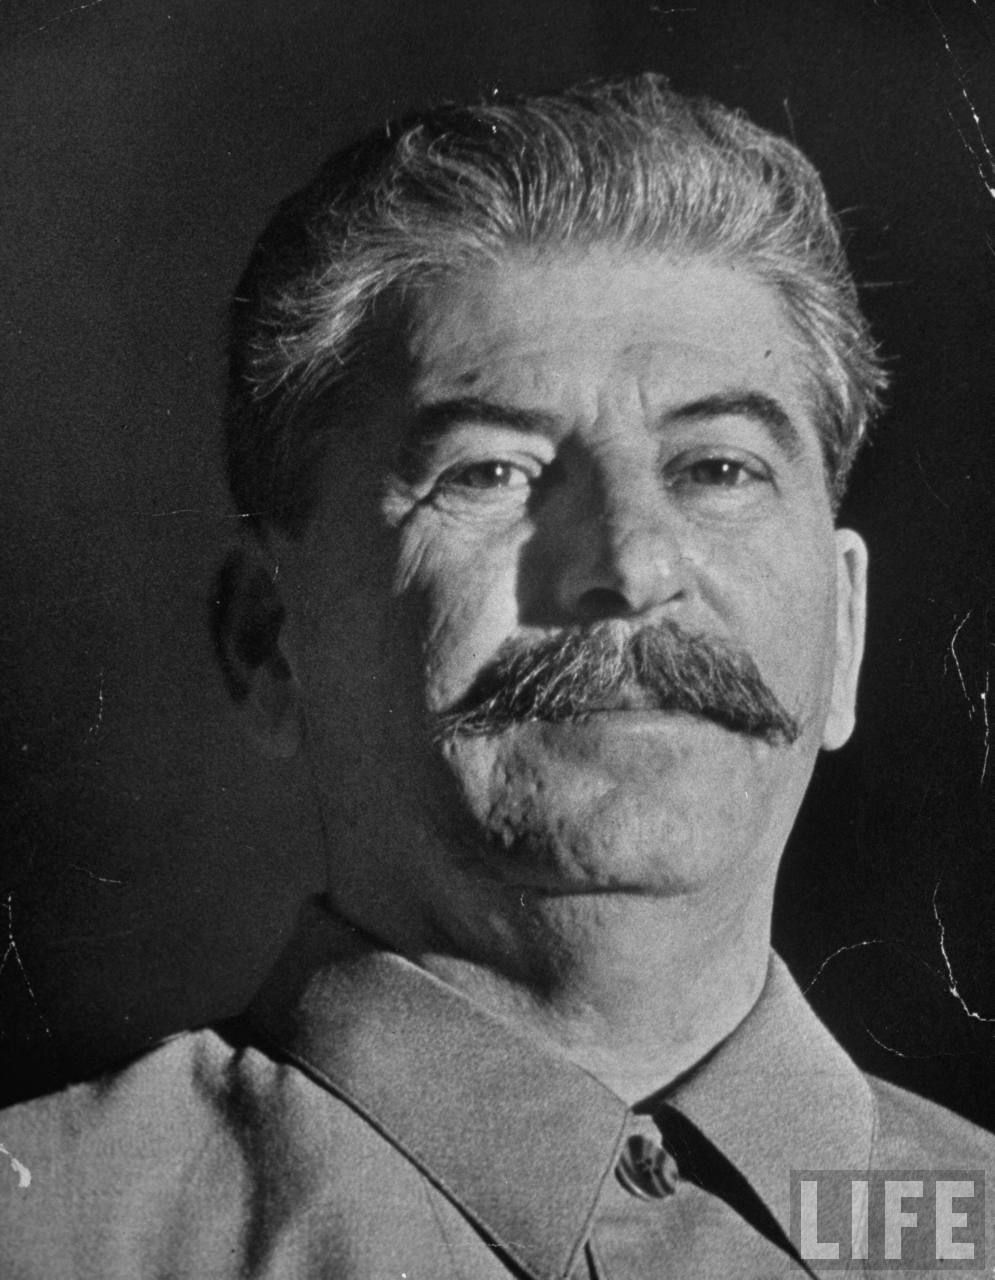 joseph stalin and leon trotsky relationship counseling